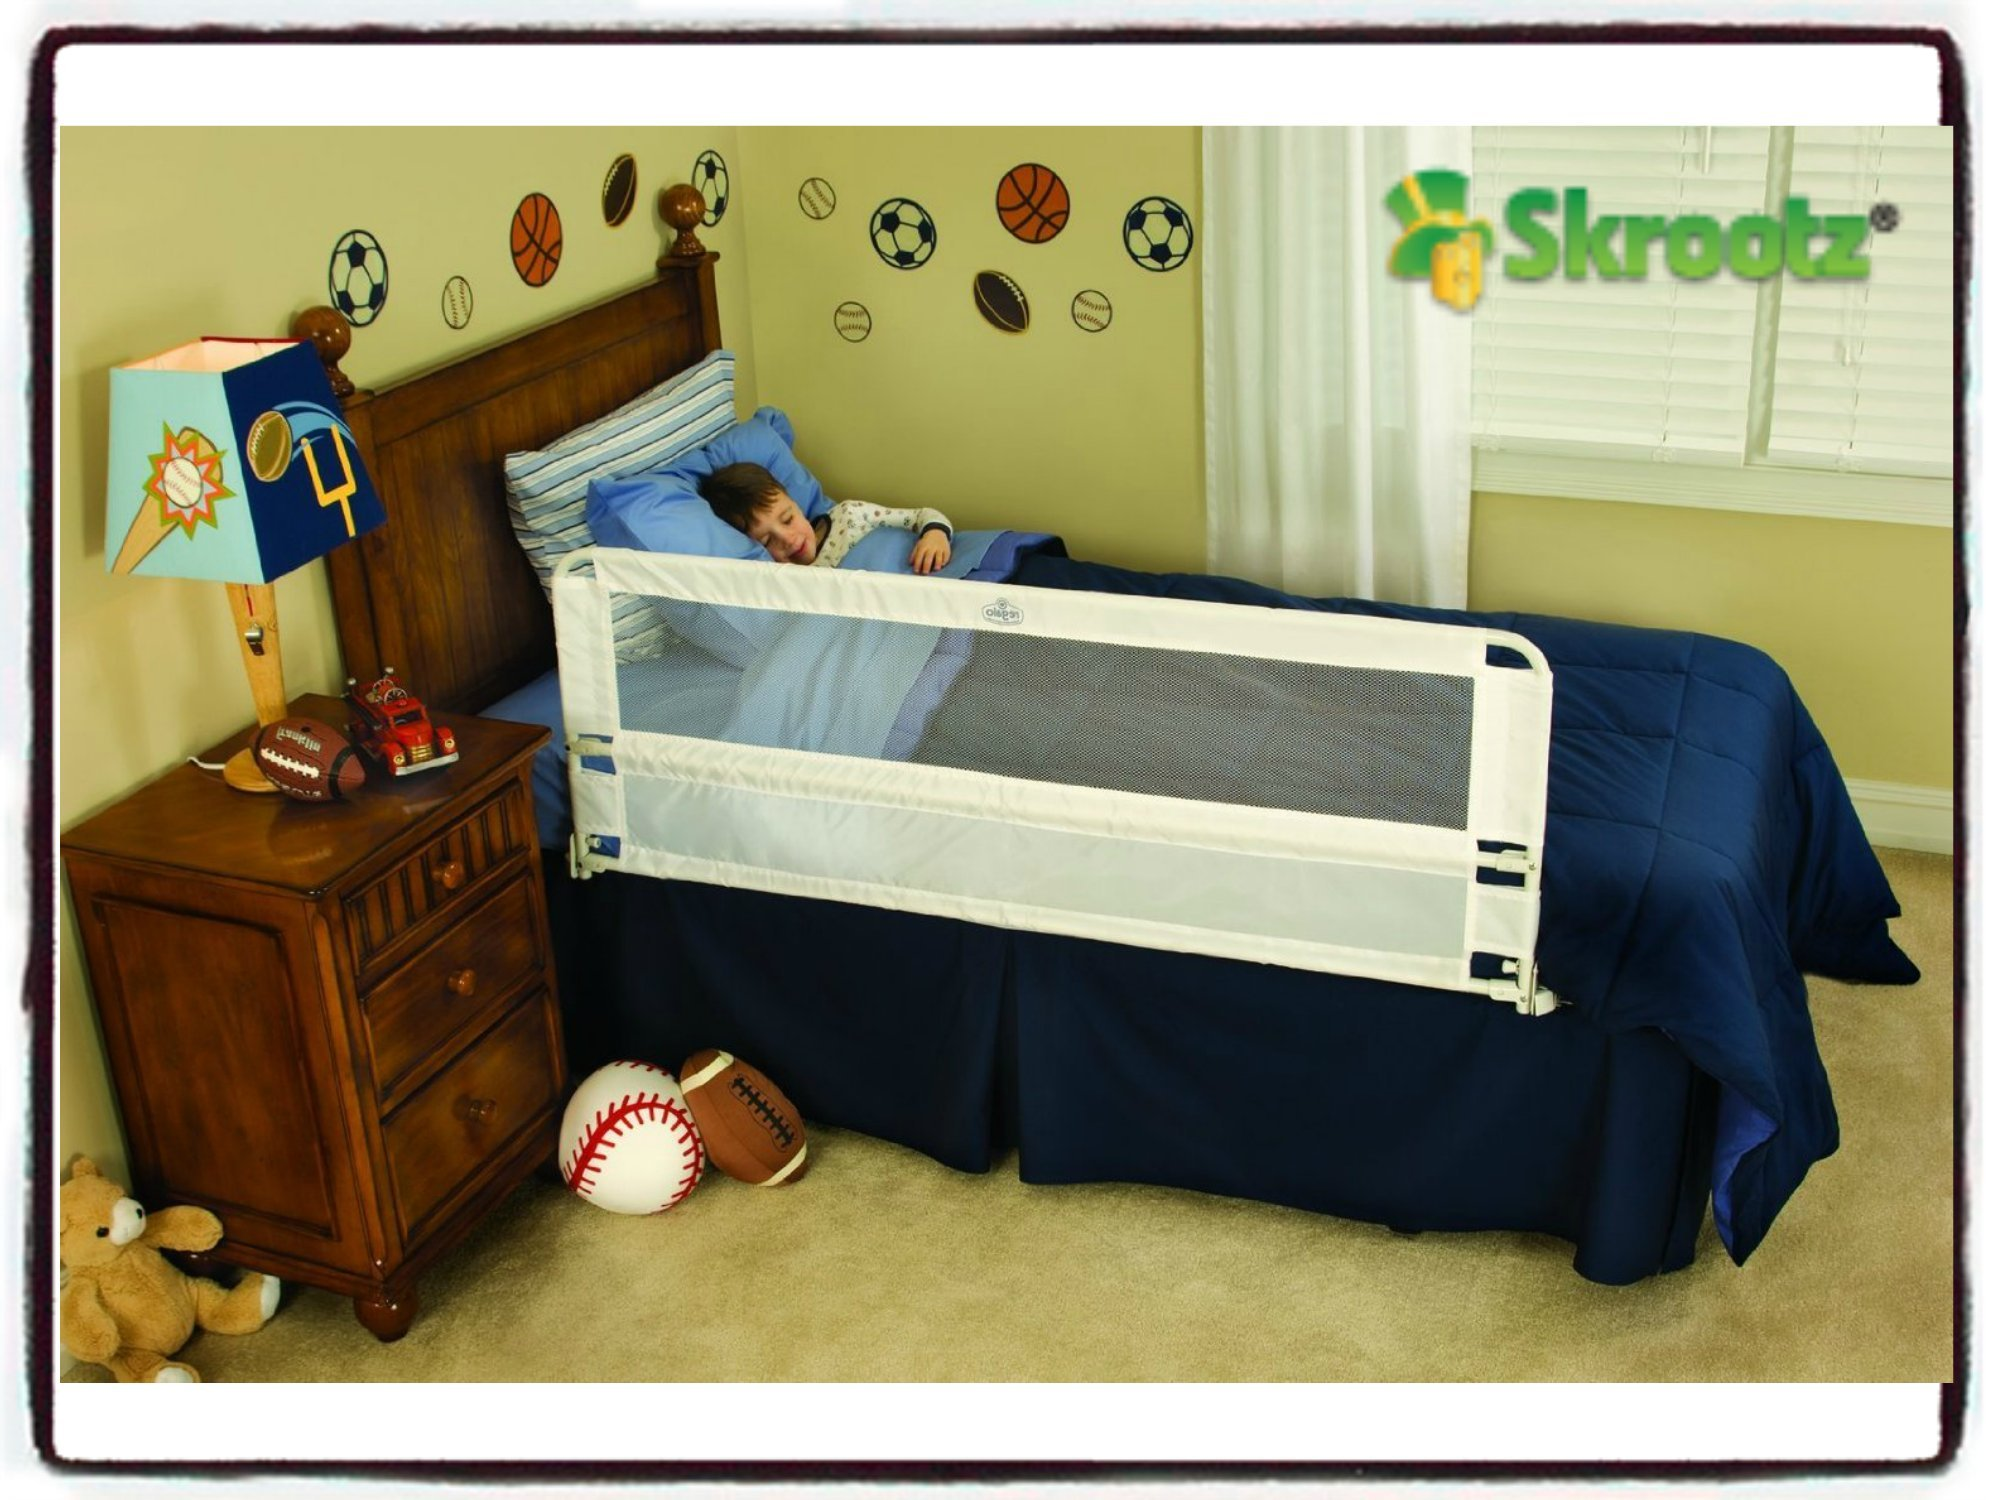 Premium Regalo Hide Away Extra Long Bed Rail, White - Made with Full Safety Metal Railings and Able to Tuck Under Mattress - Great for Children, Toddlers and Elderly - Protect Your Investment